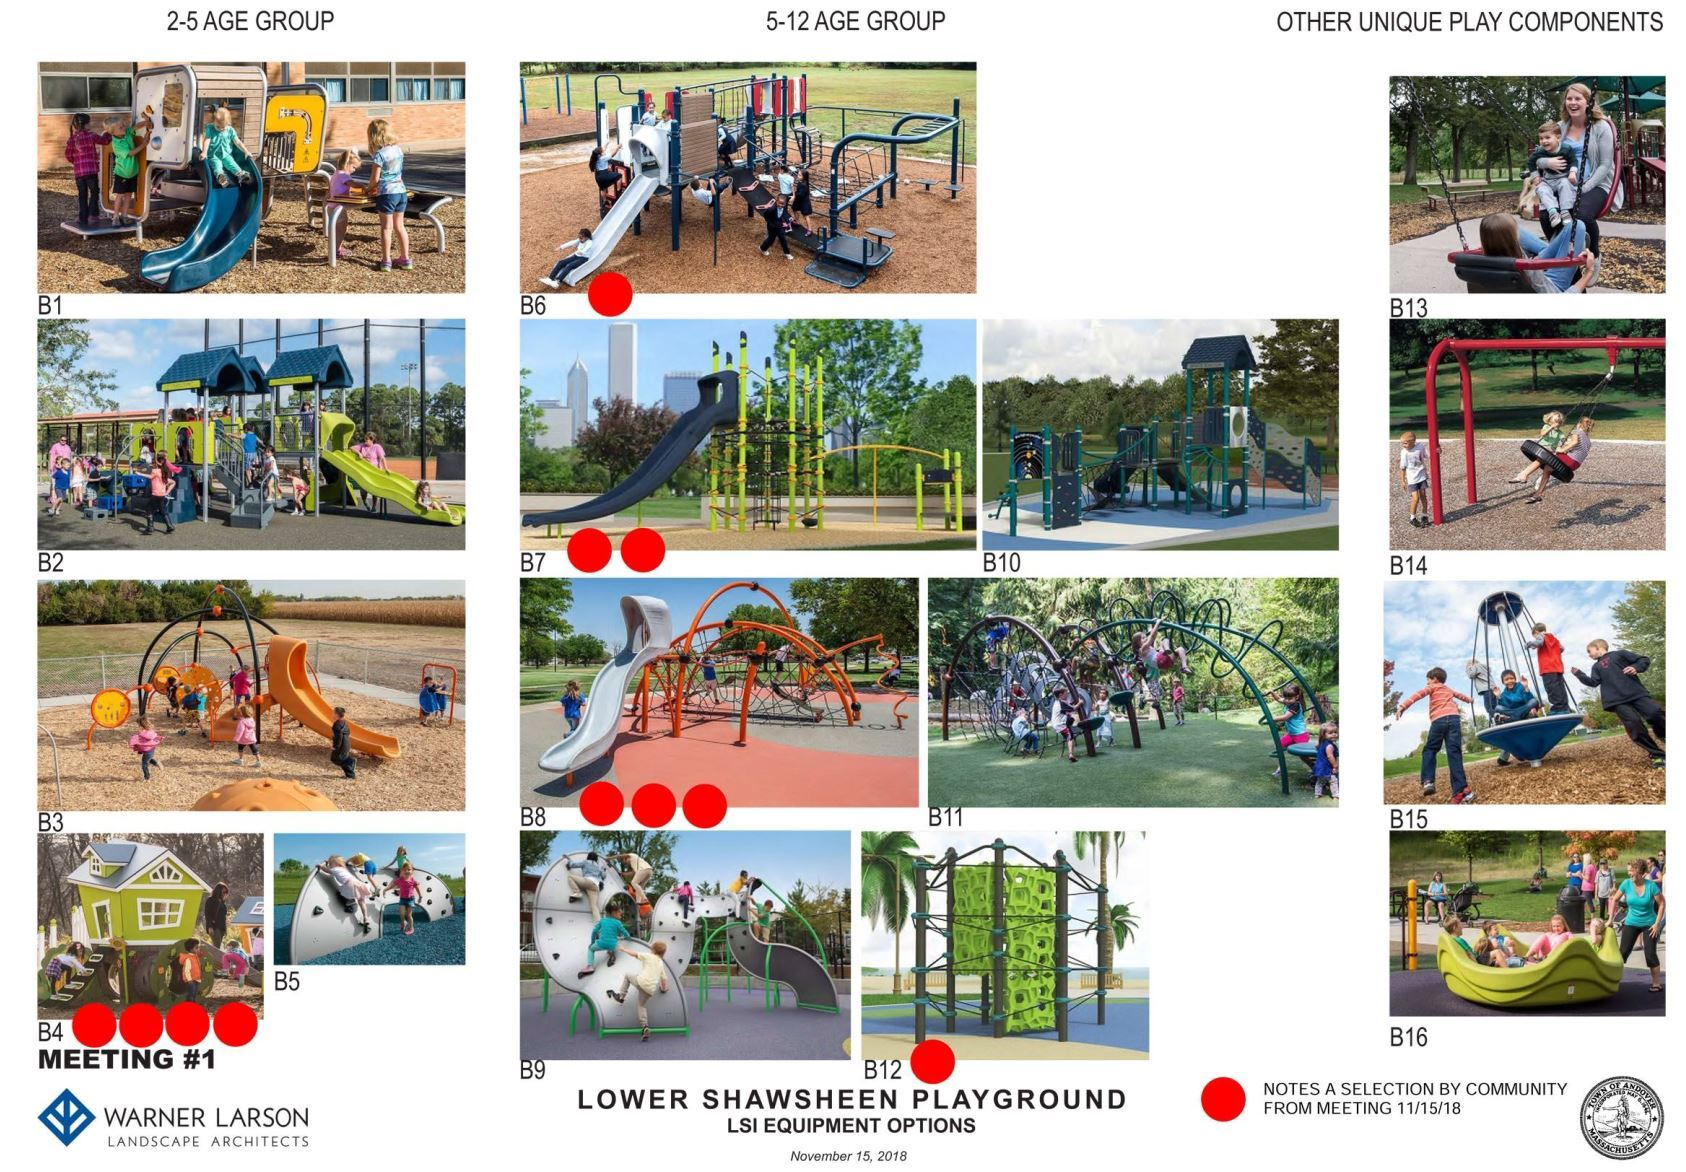 Playground Options B